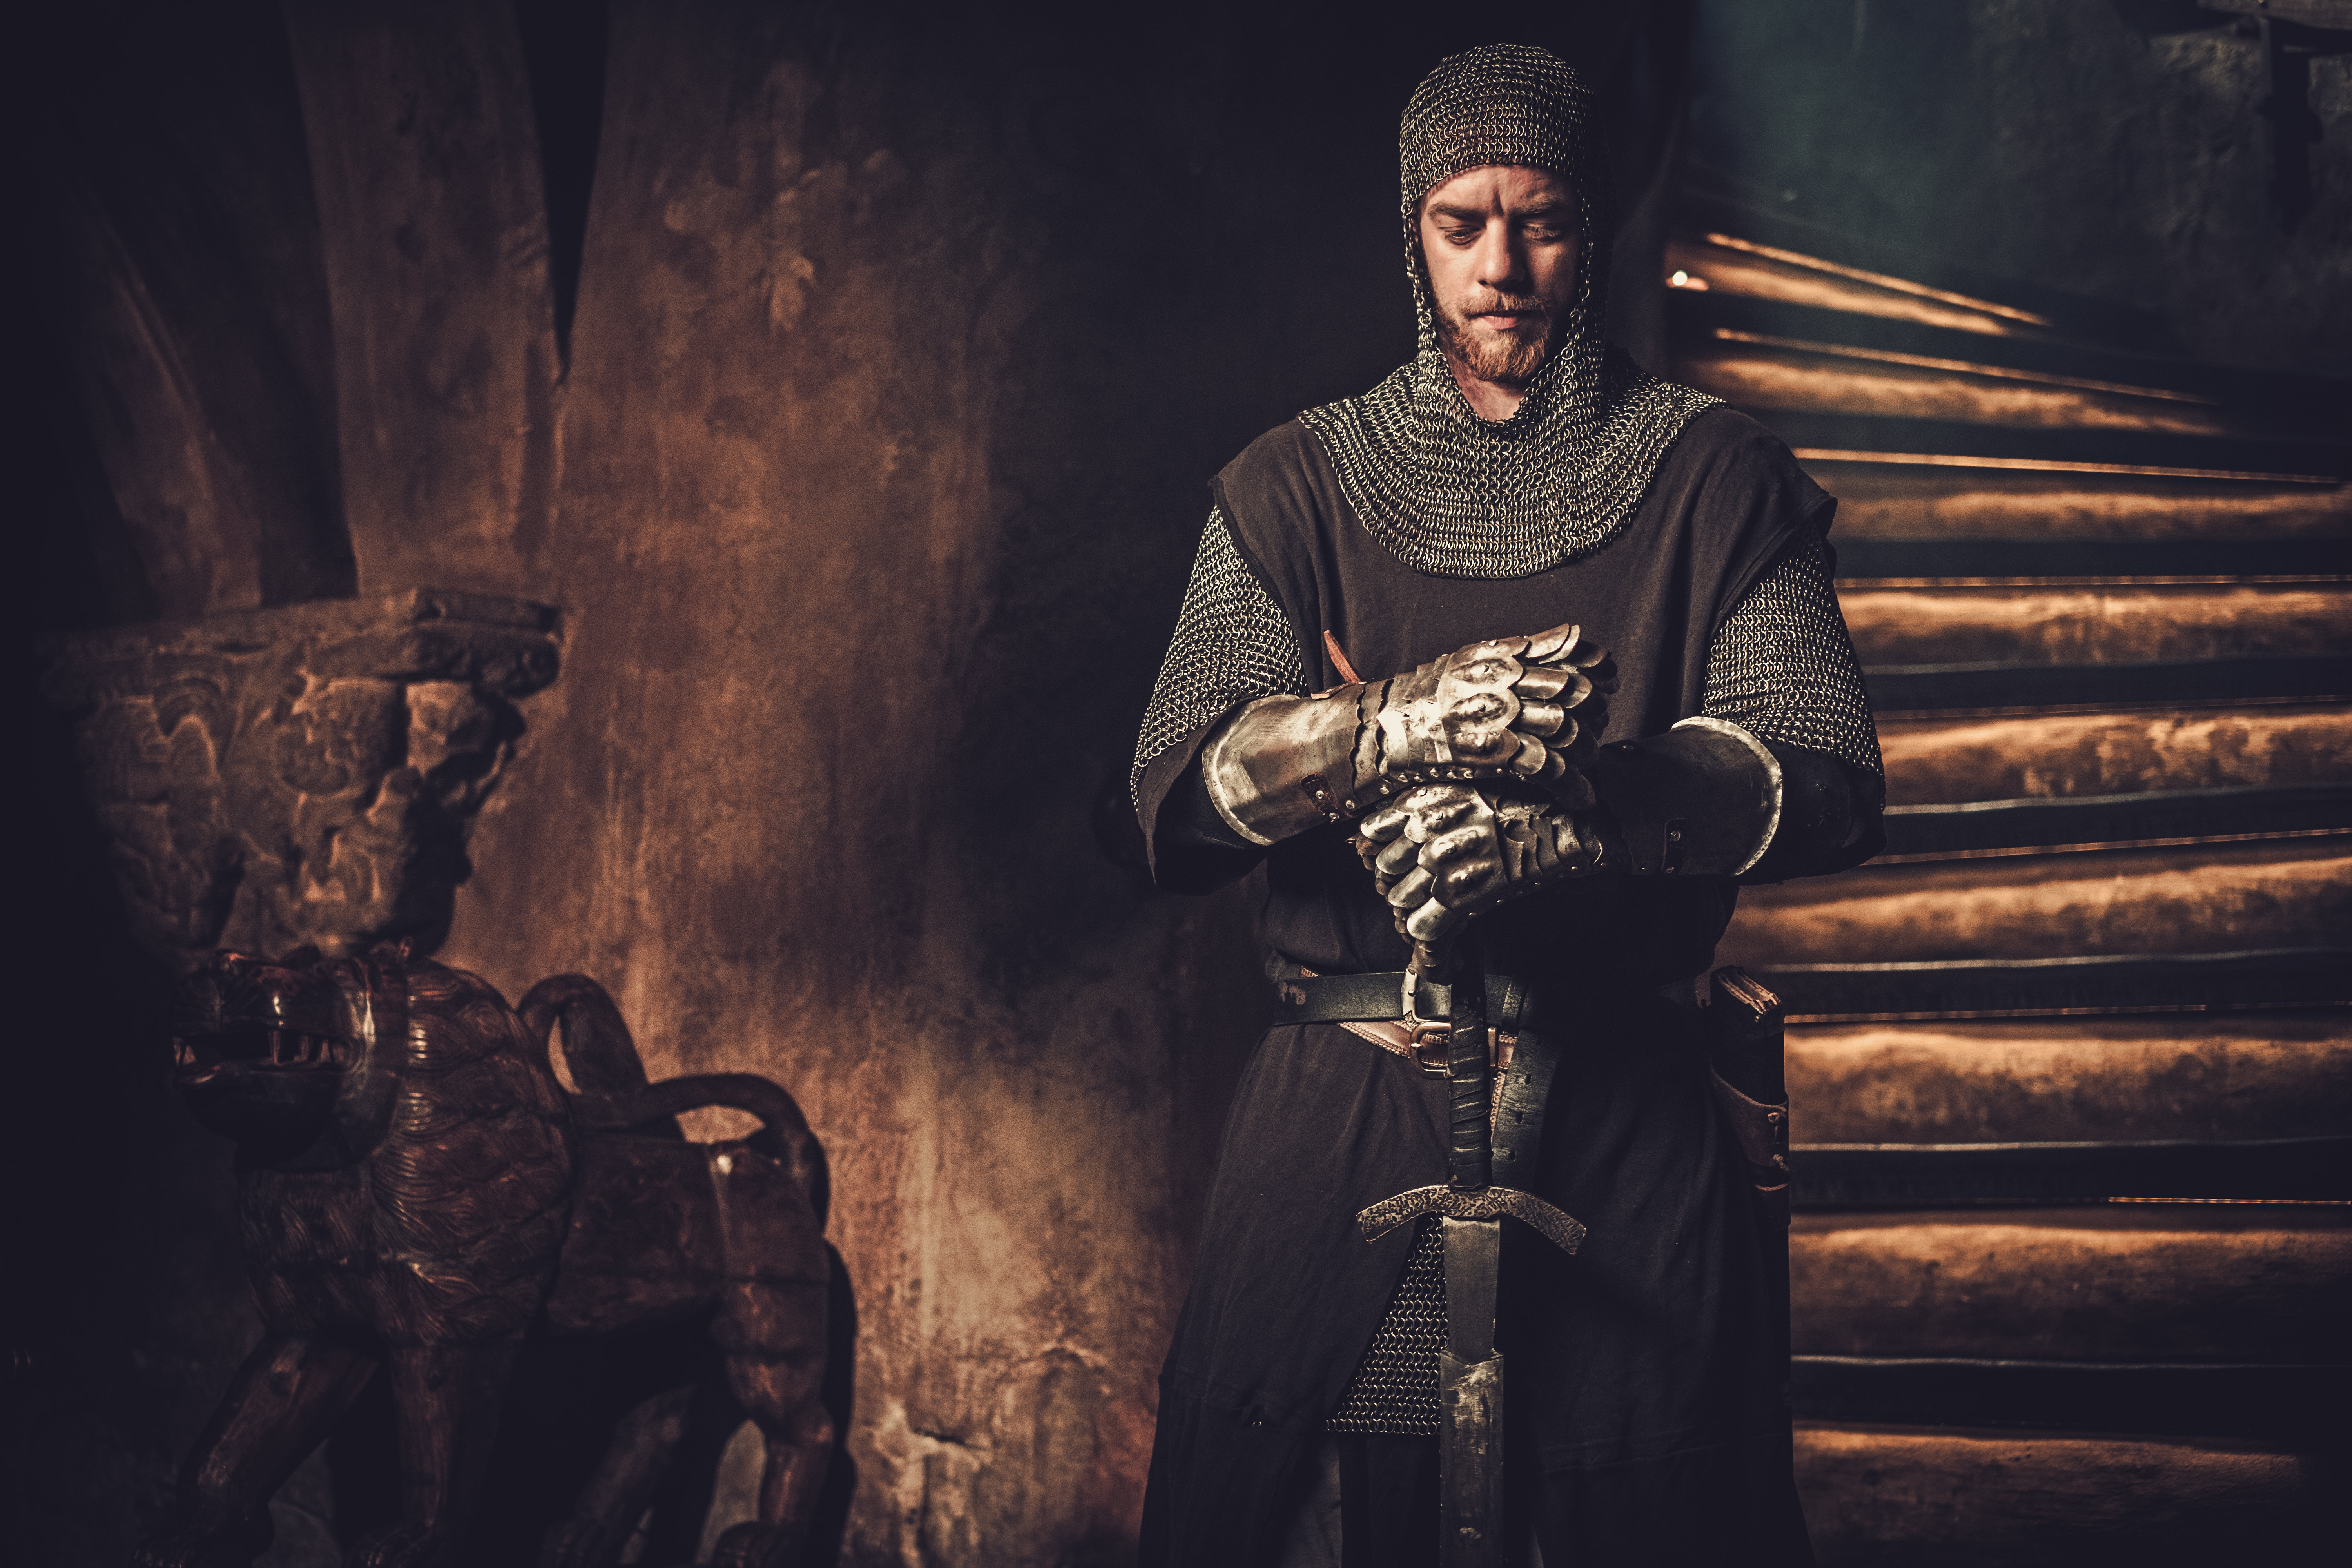 Medieval knight in ancient castle interior